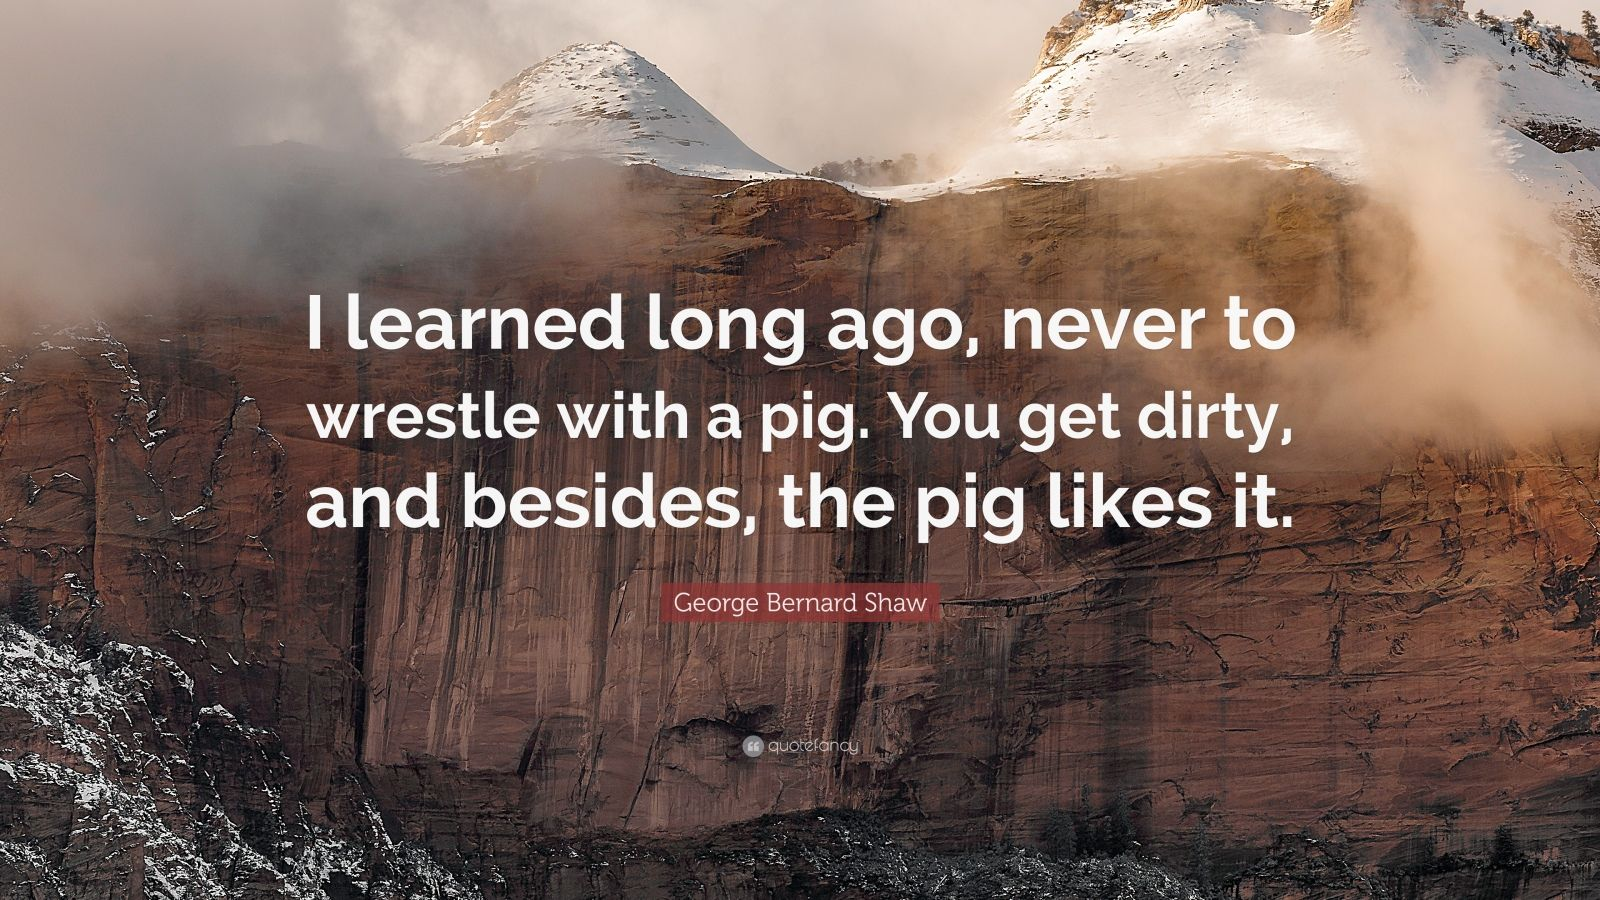 """George Bernard Shaw Quote: """"I learned long ago, never to wrestle with a pig. You get dirty, and besides, the pig likes it."""""""